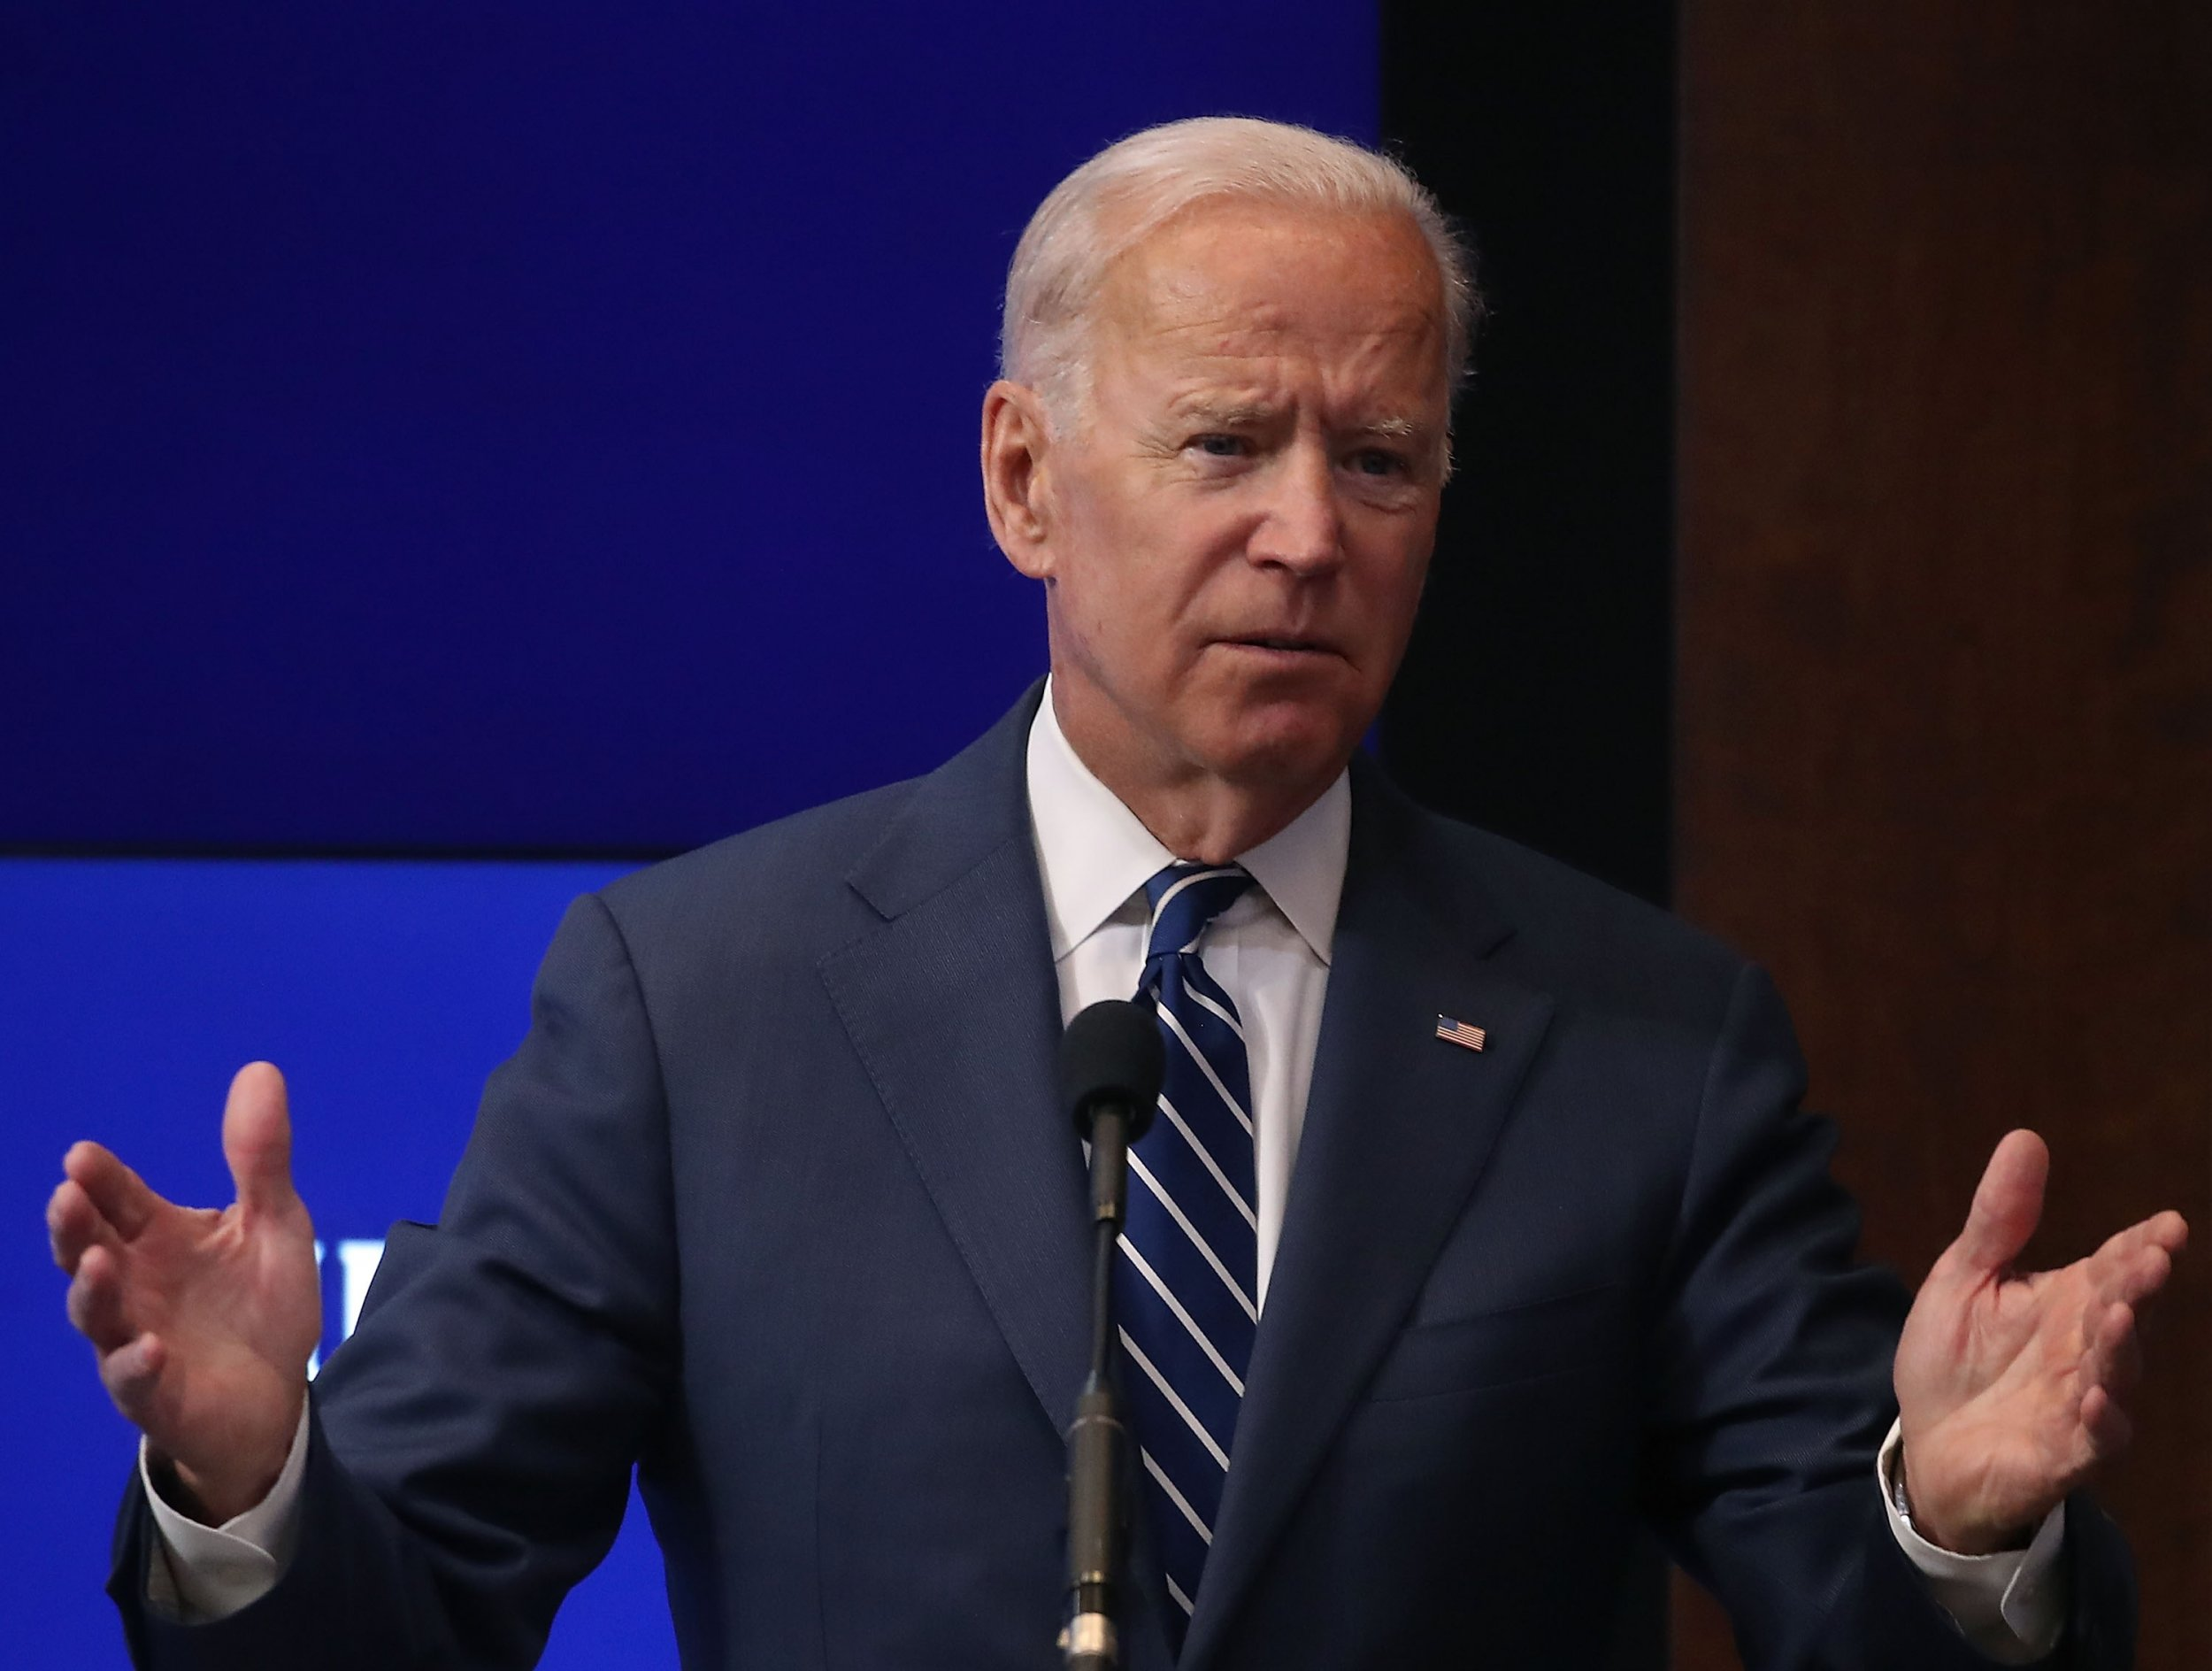 newsweek.com - Jessica Kwong - Joe Biden says Trump's policy of separating families is 'one of the darkest moments in our history'